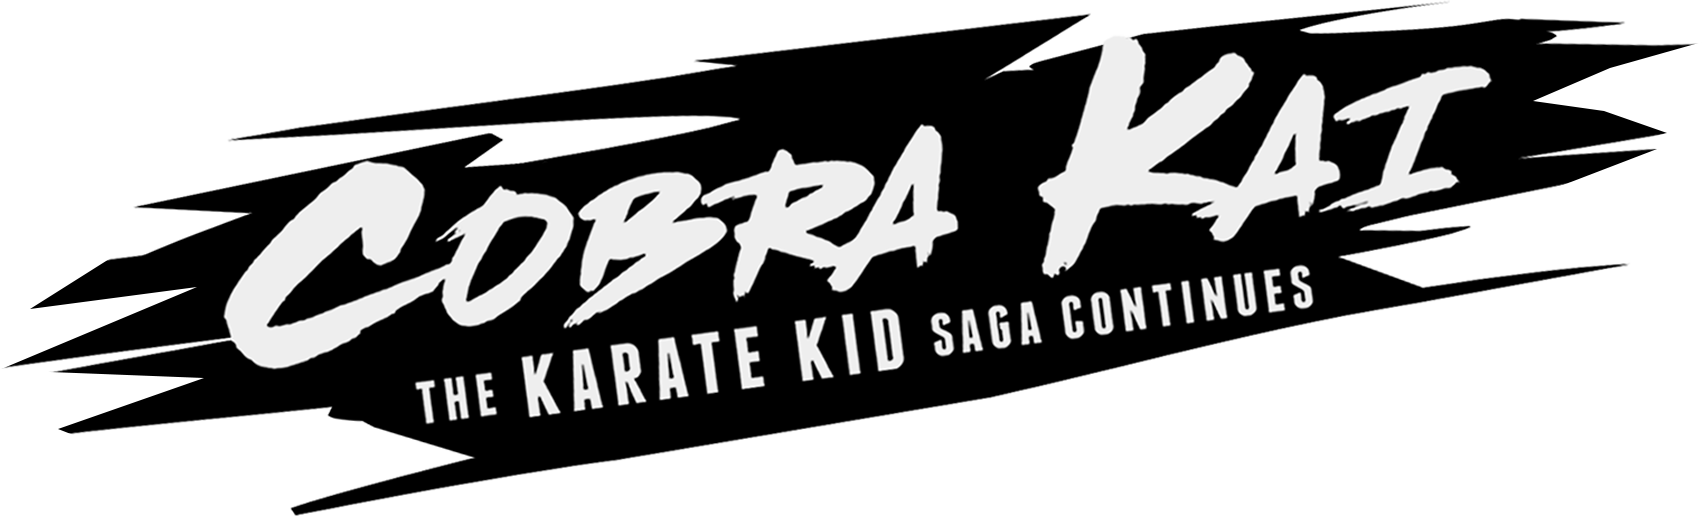 Cobra_Kai_Logo There's a Cobra Kai Game, but Is It as Good as the Web Series?